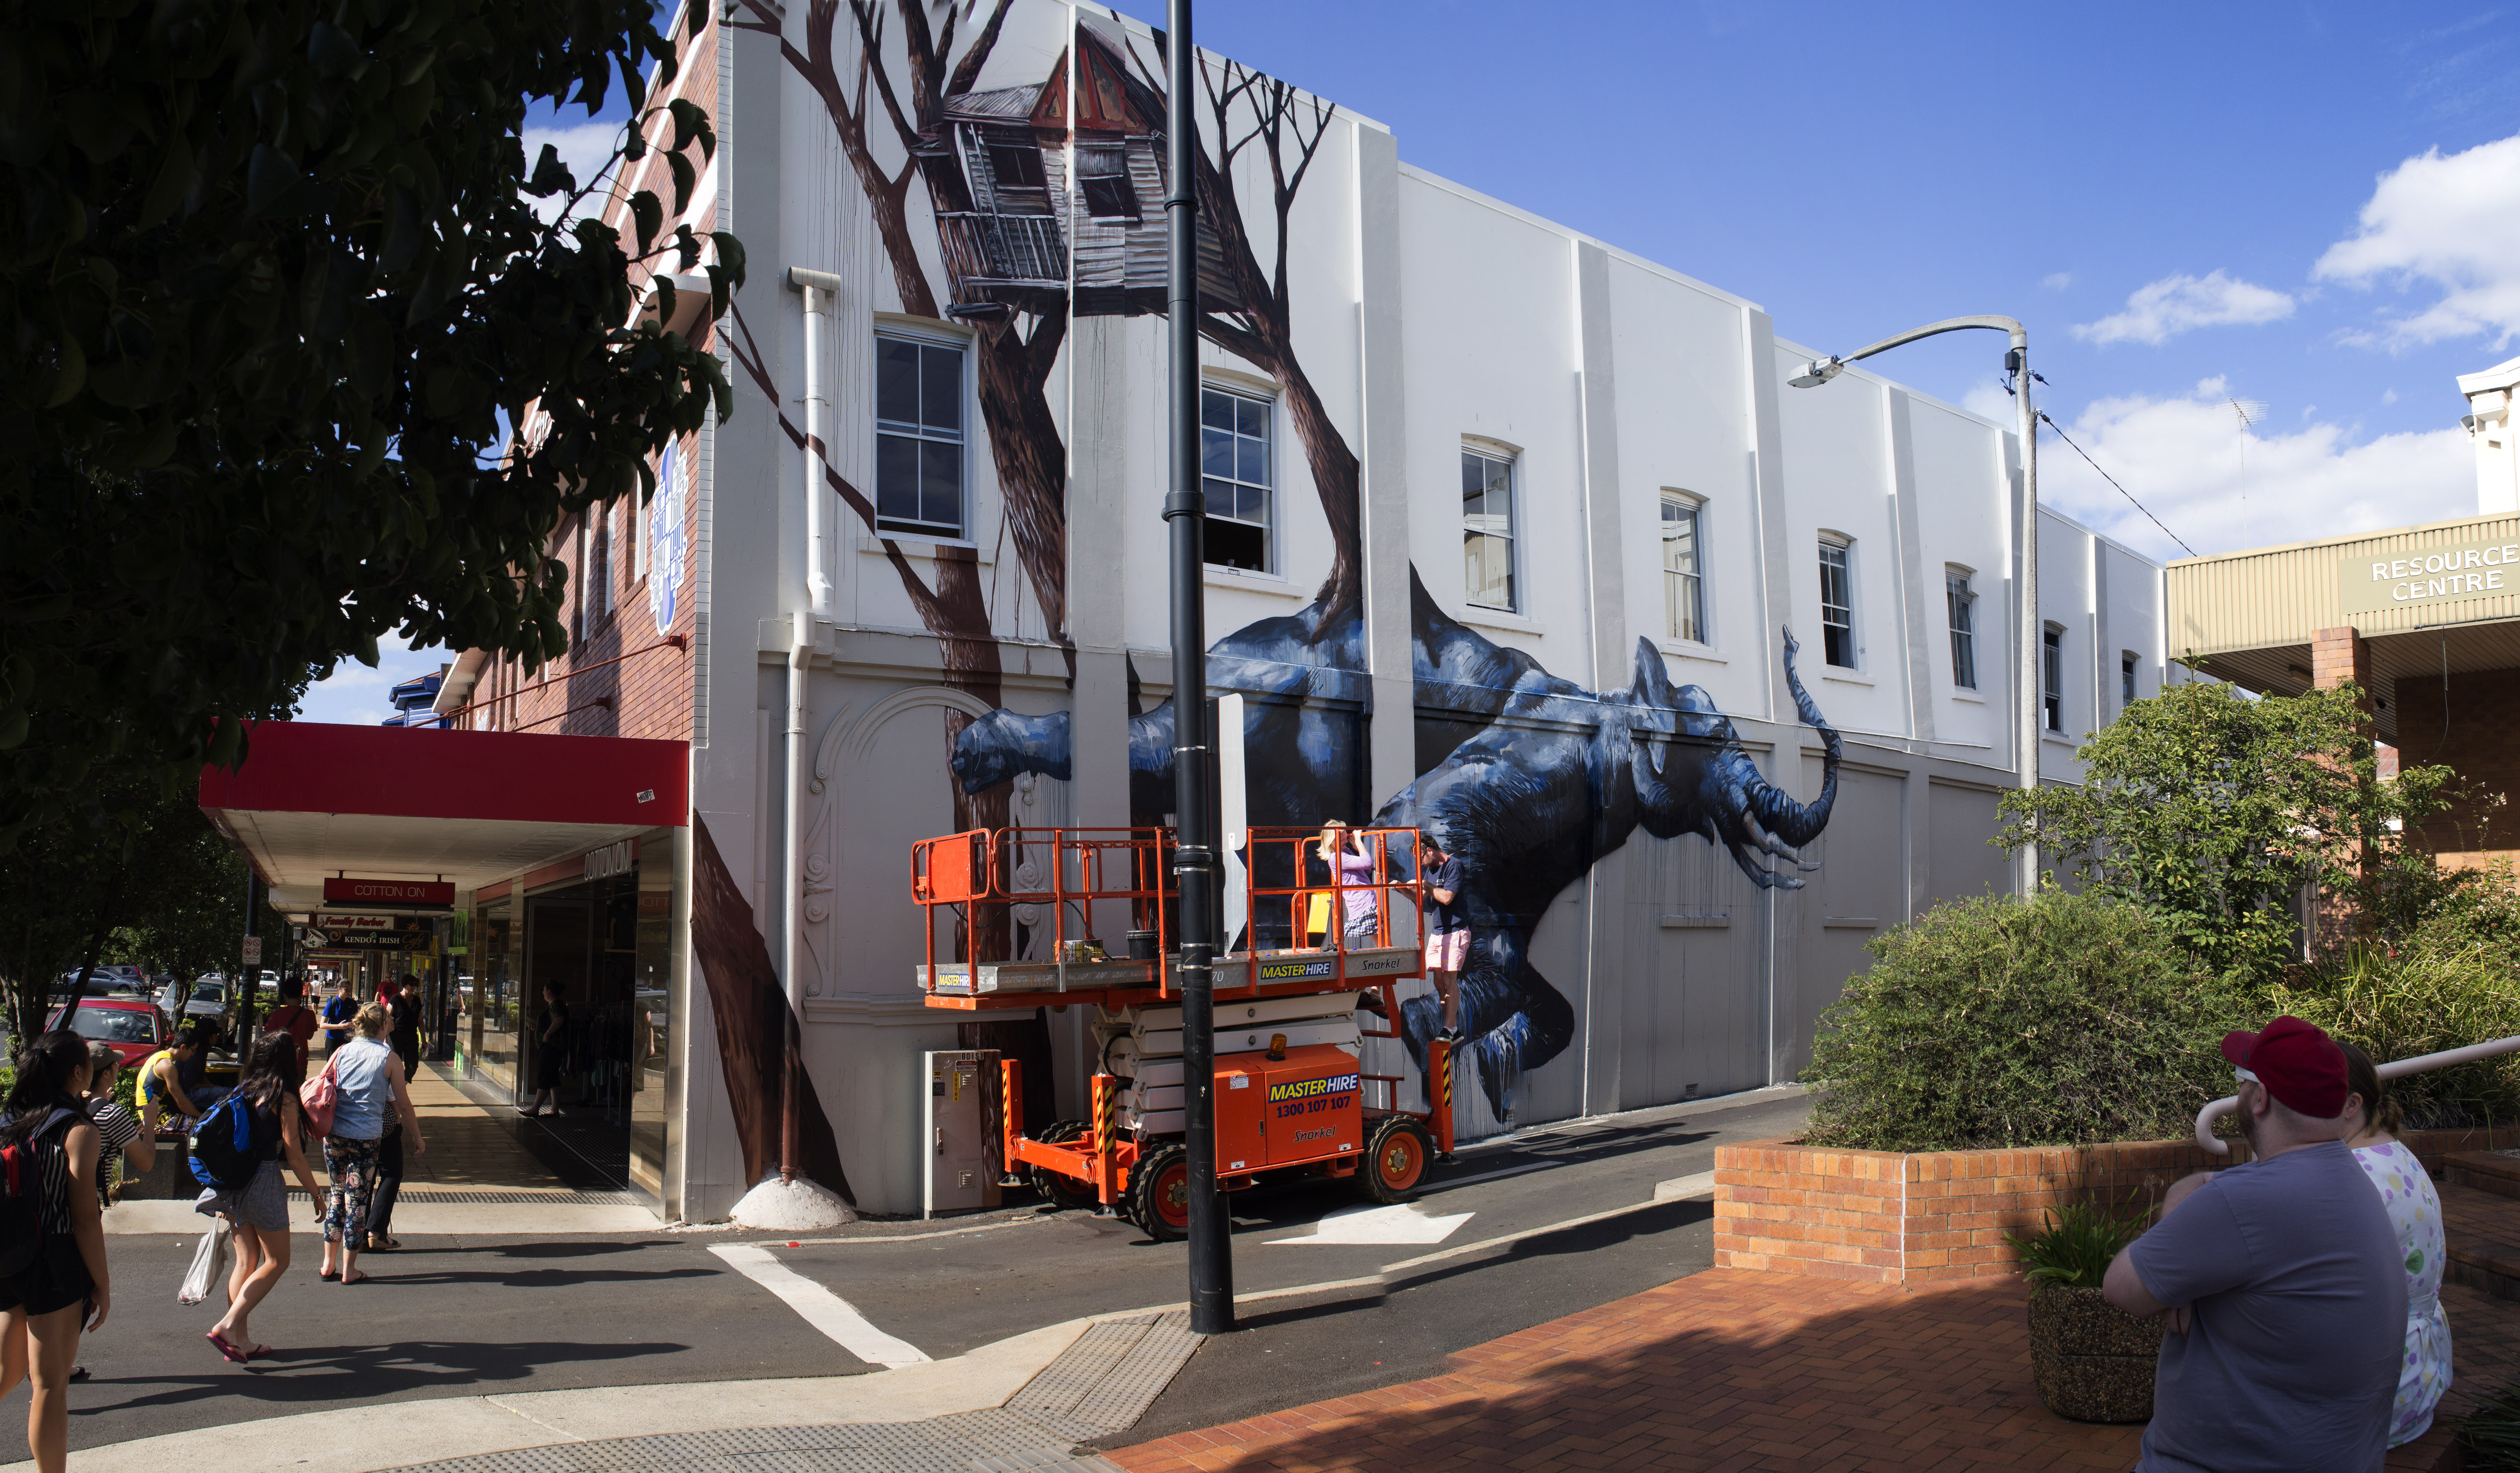 Toowoomba graffiti wotwedid - Wall arts images ...